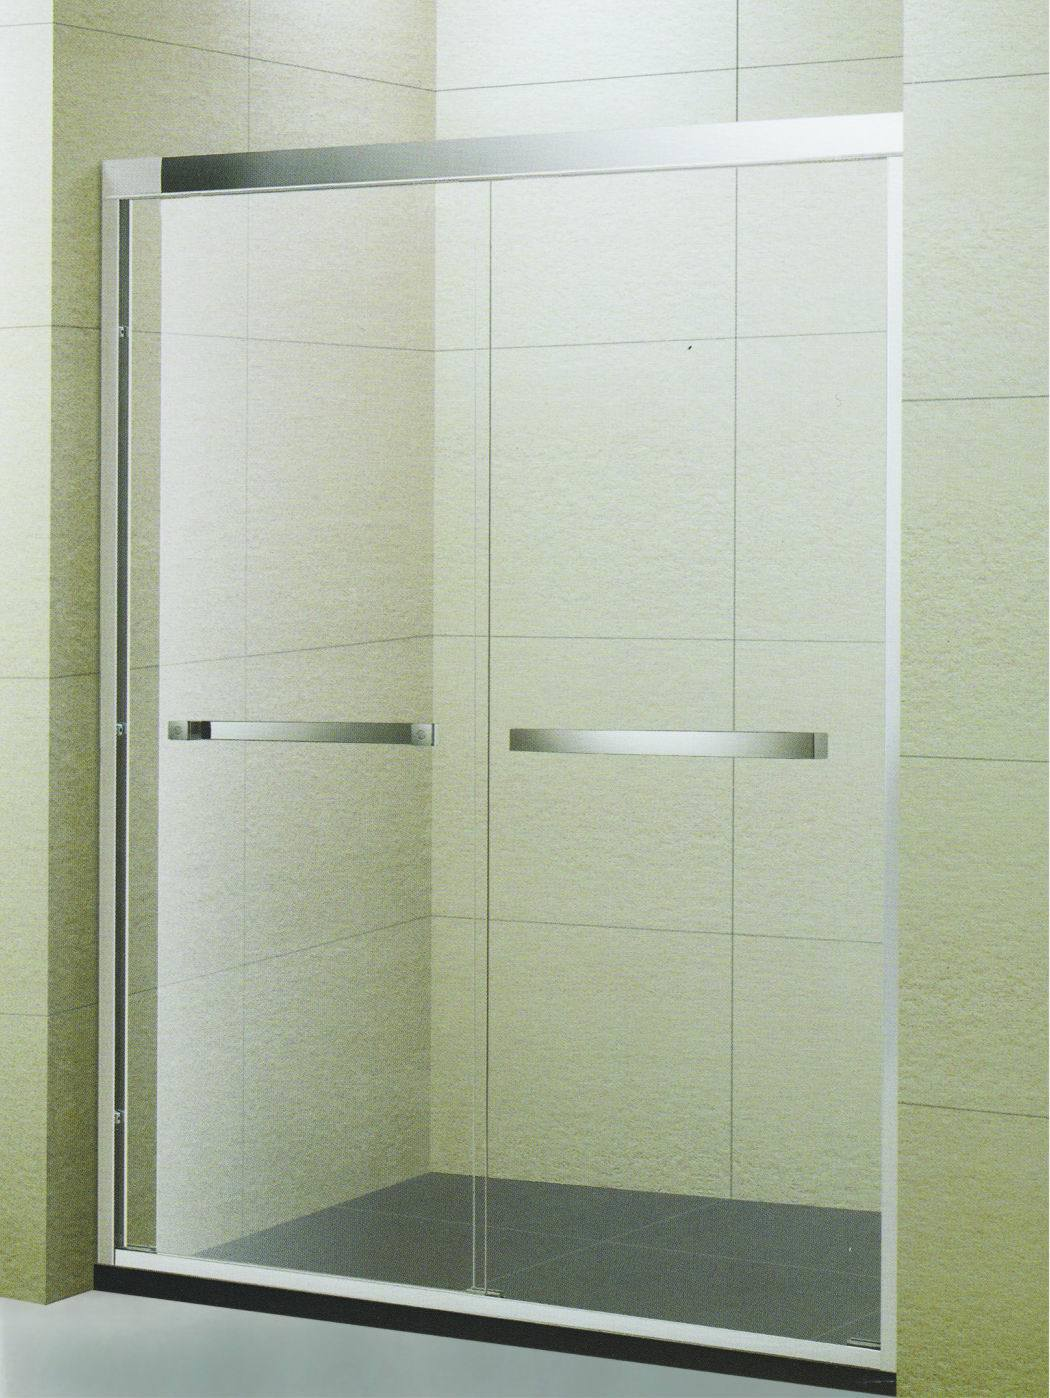 China Project Frame Sliding Double Stainless Steel Towel Bar Shower ...